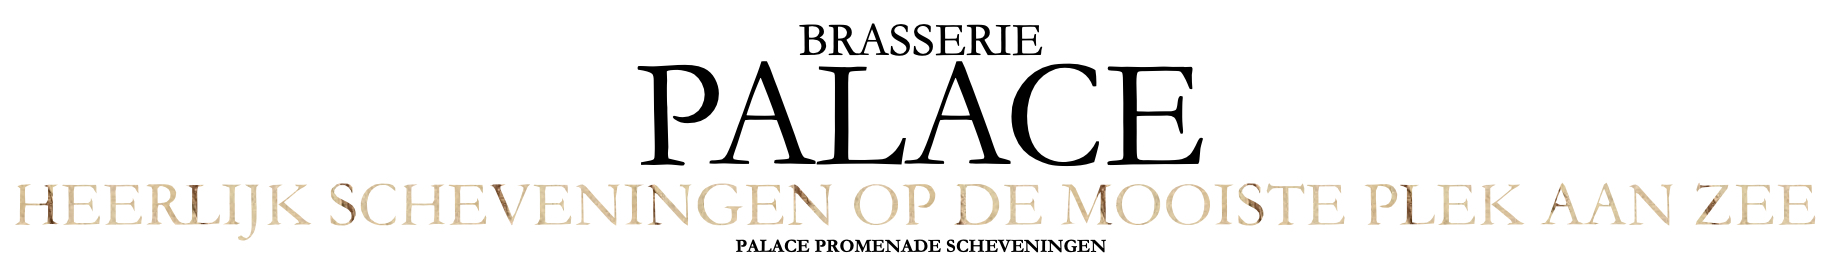 Banner Brasserie Palace WINTER afwijkend